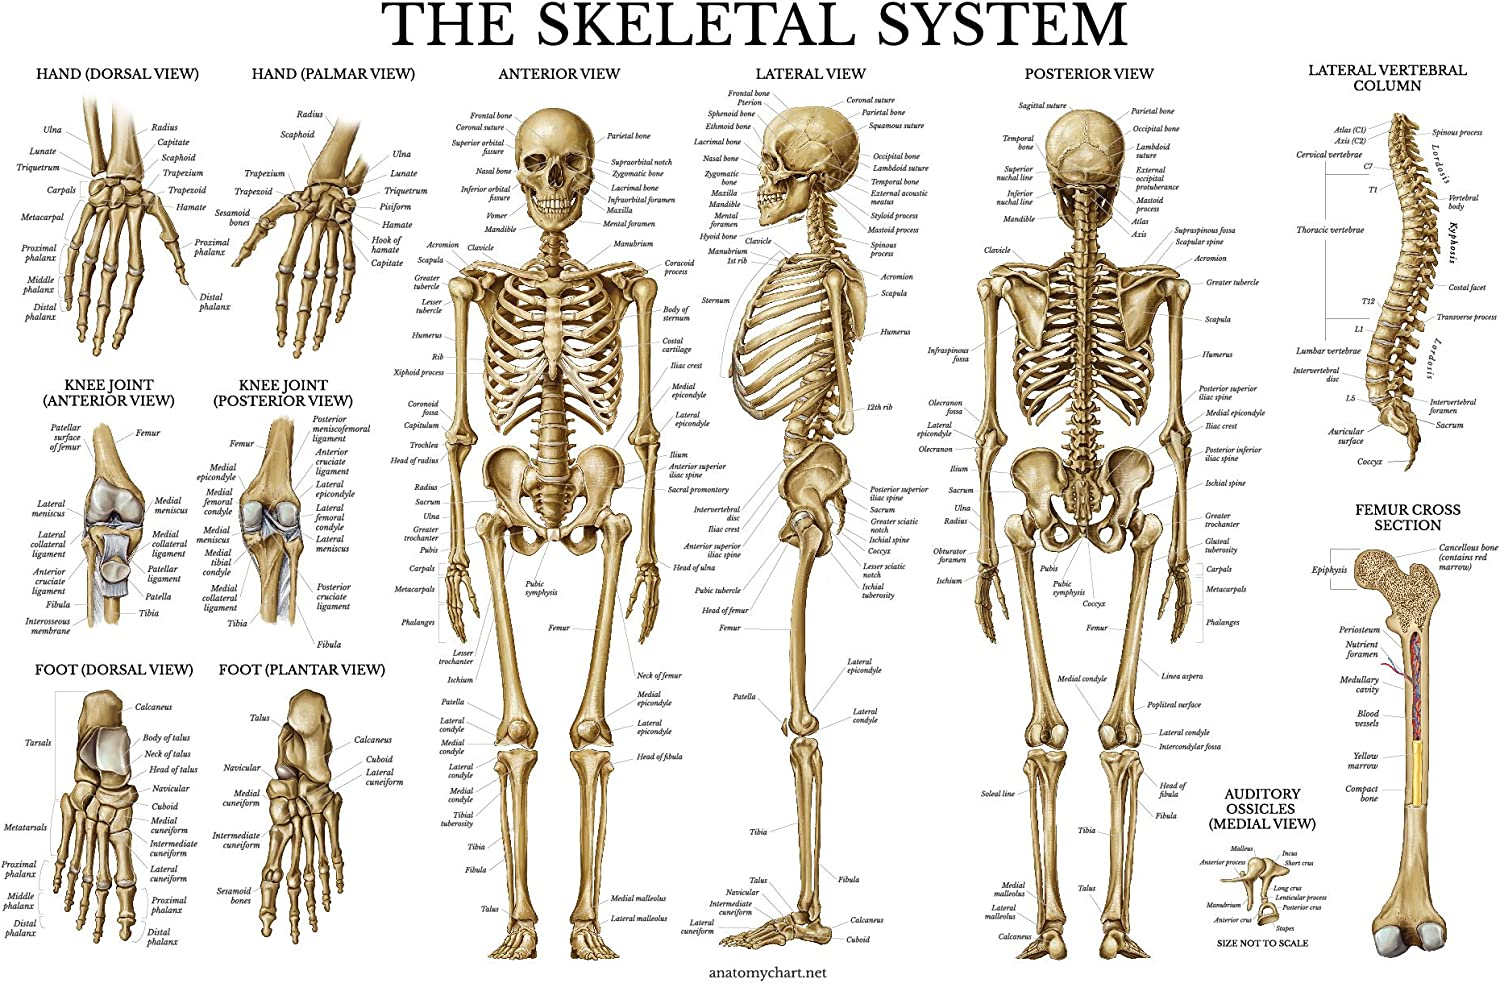 The Human Skeleton Photo Picture Anatomy Skeletal System Human Poster Science